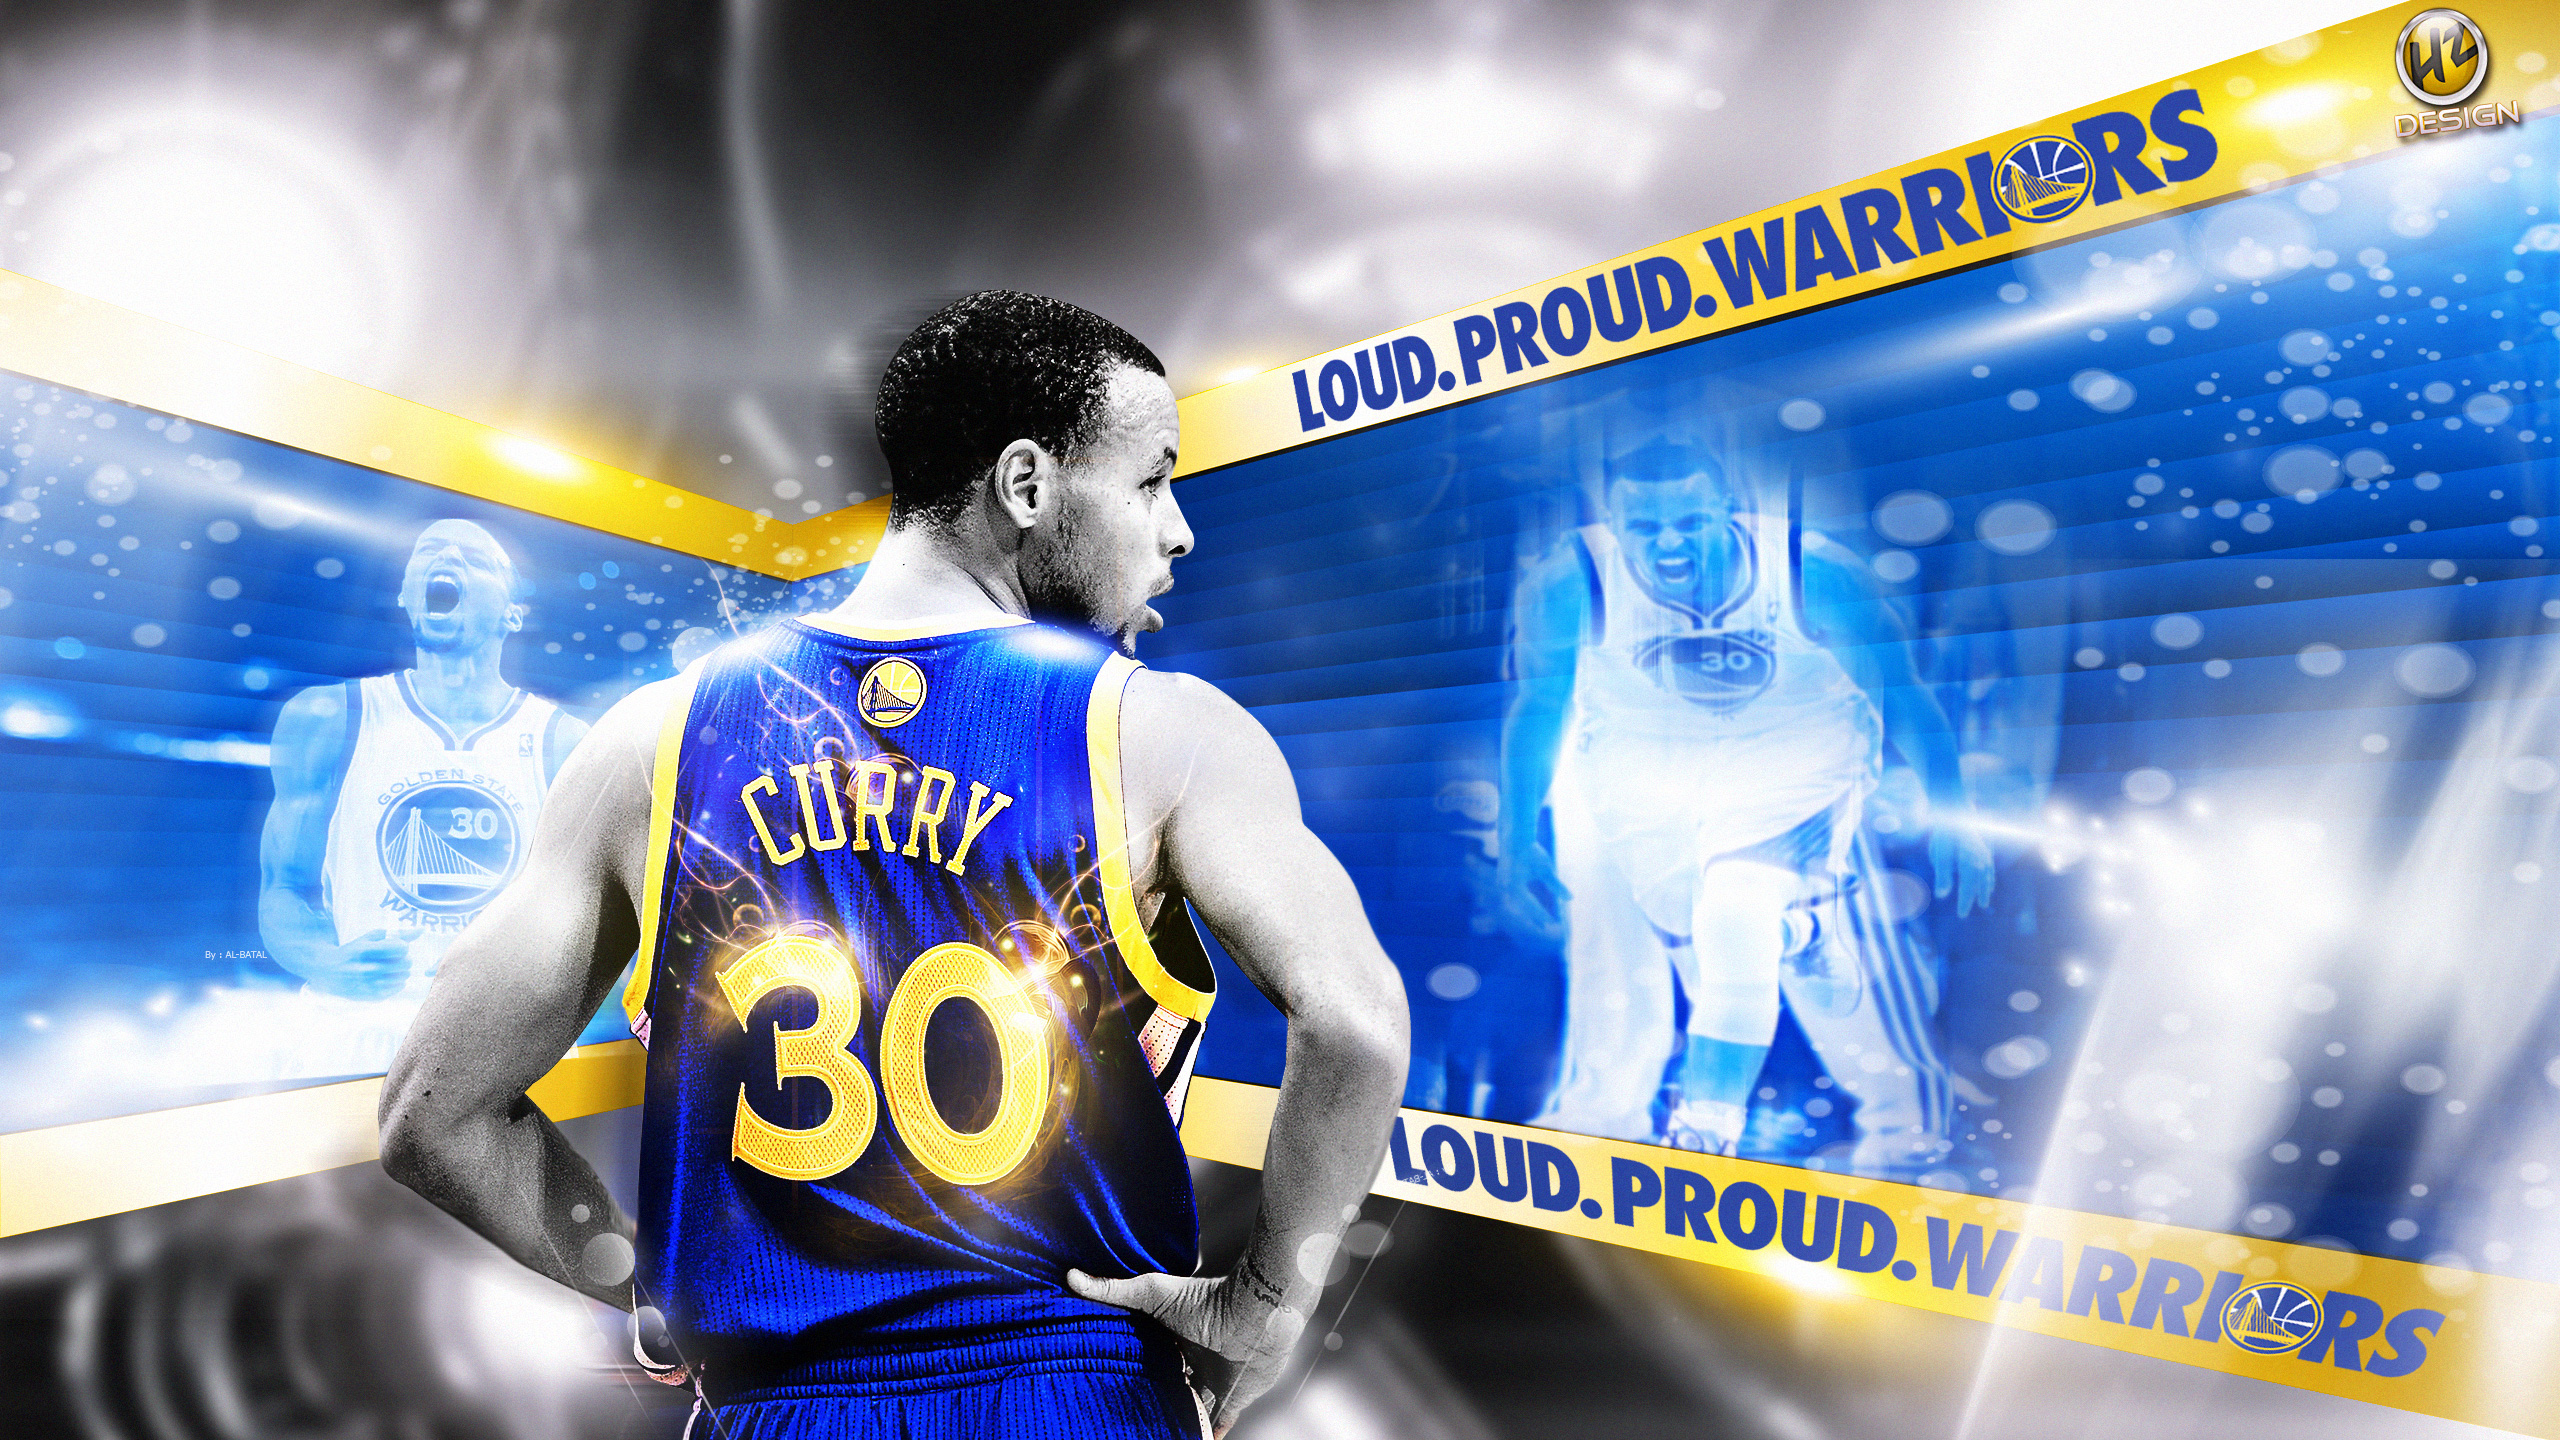 Wonderful Wallpaper Logo Stephen Curry - stephen-curry-wallpaper-7  Collection_713621.jpg